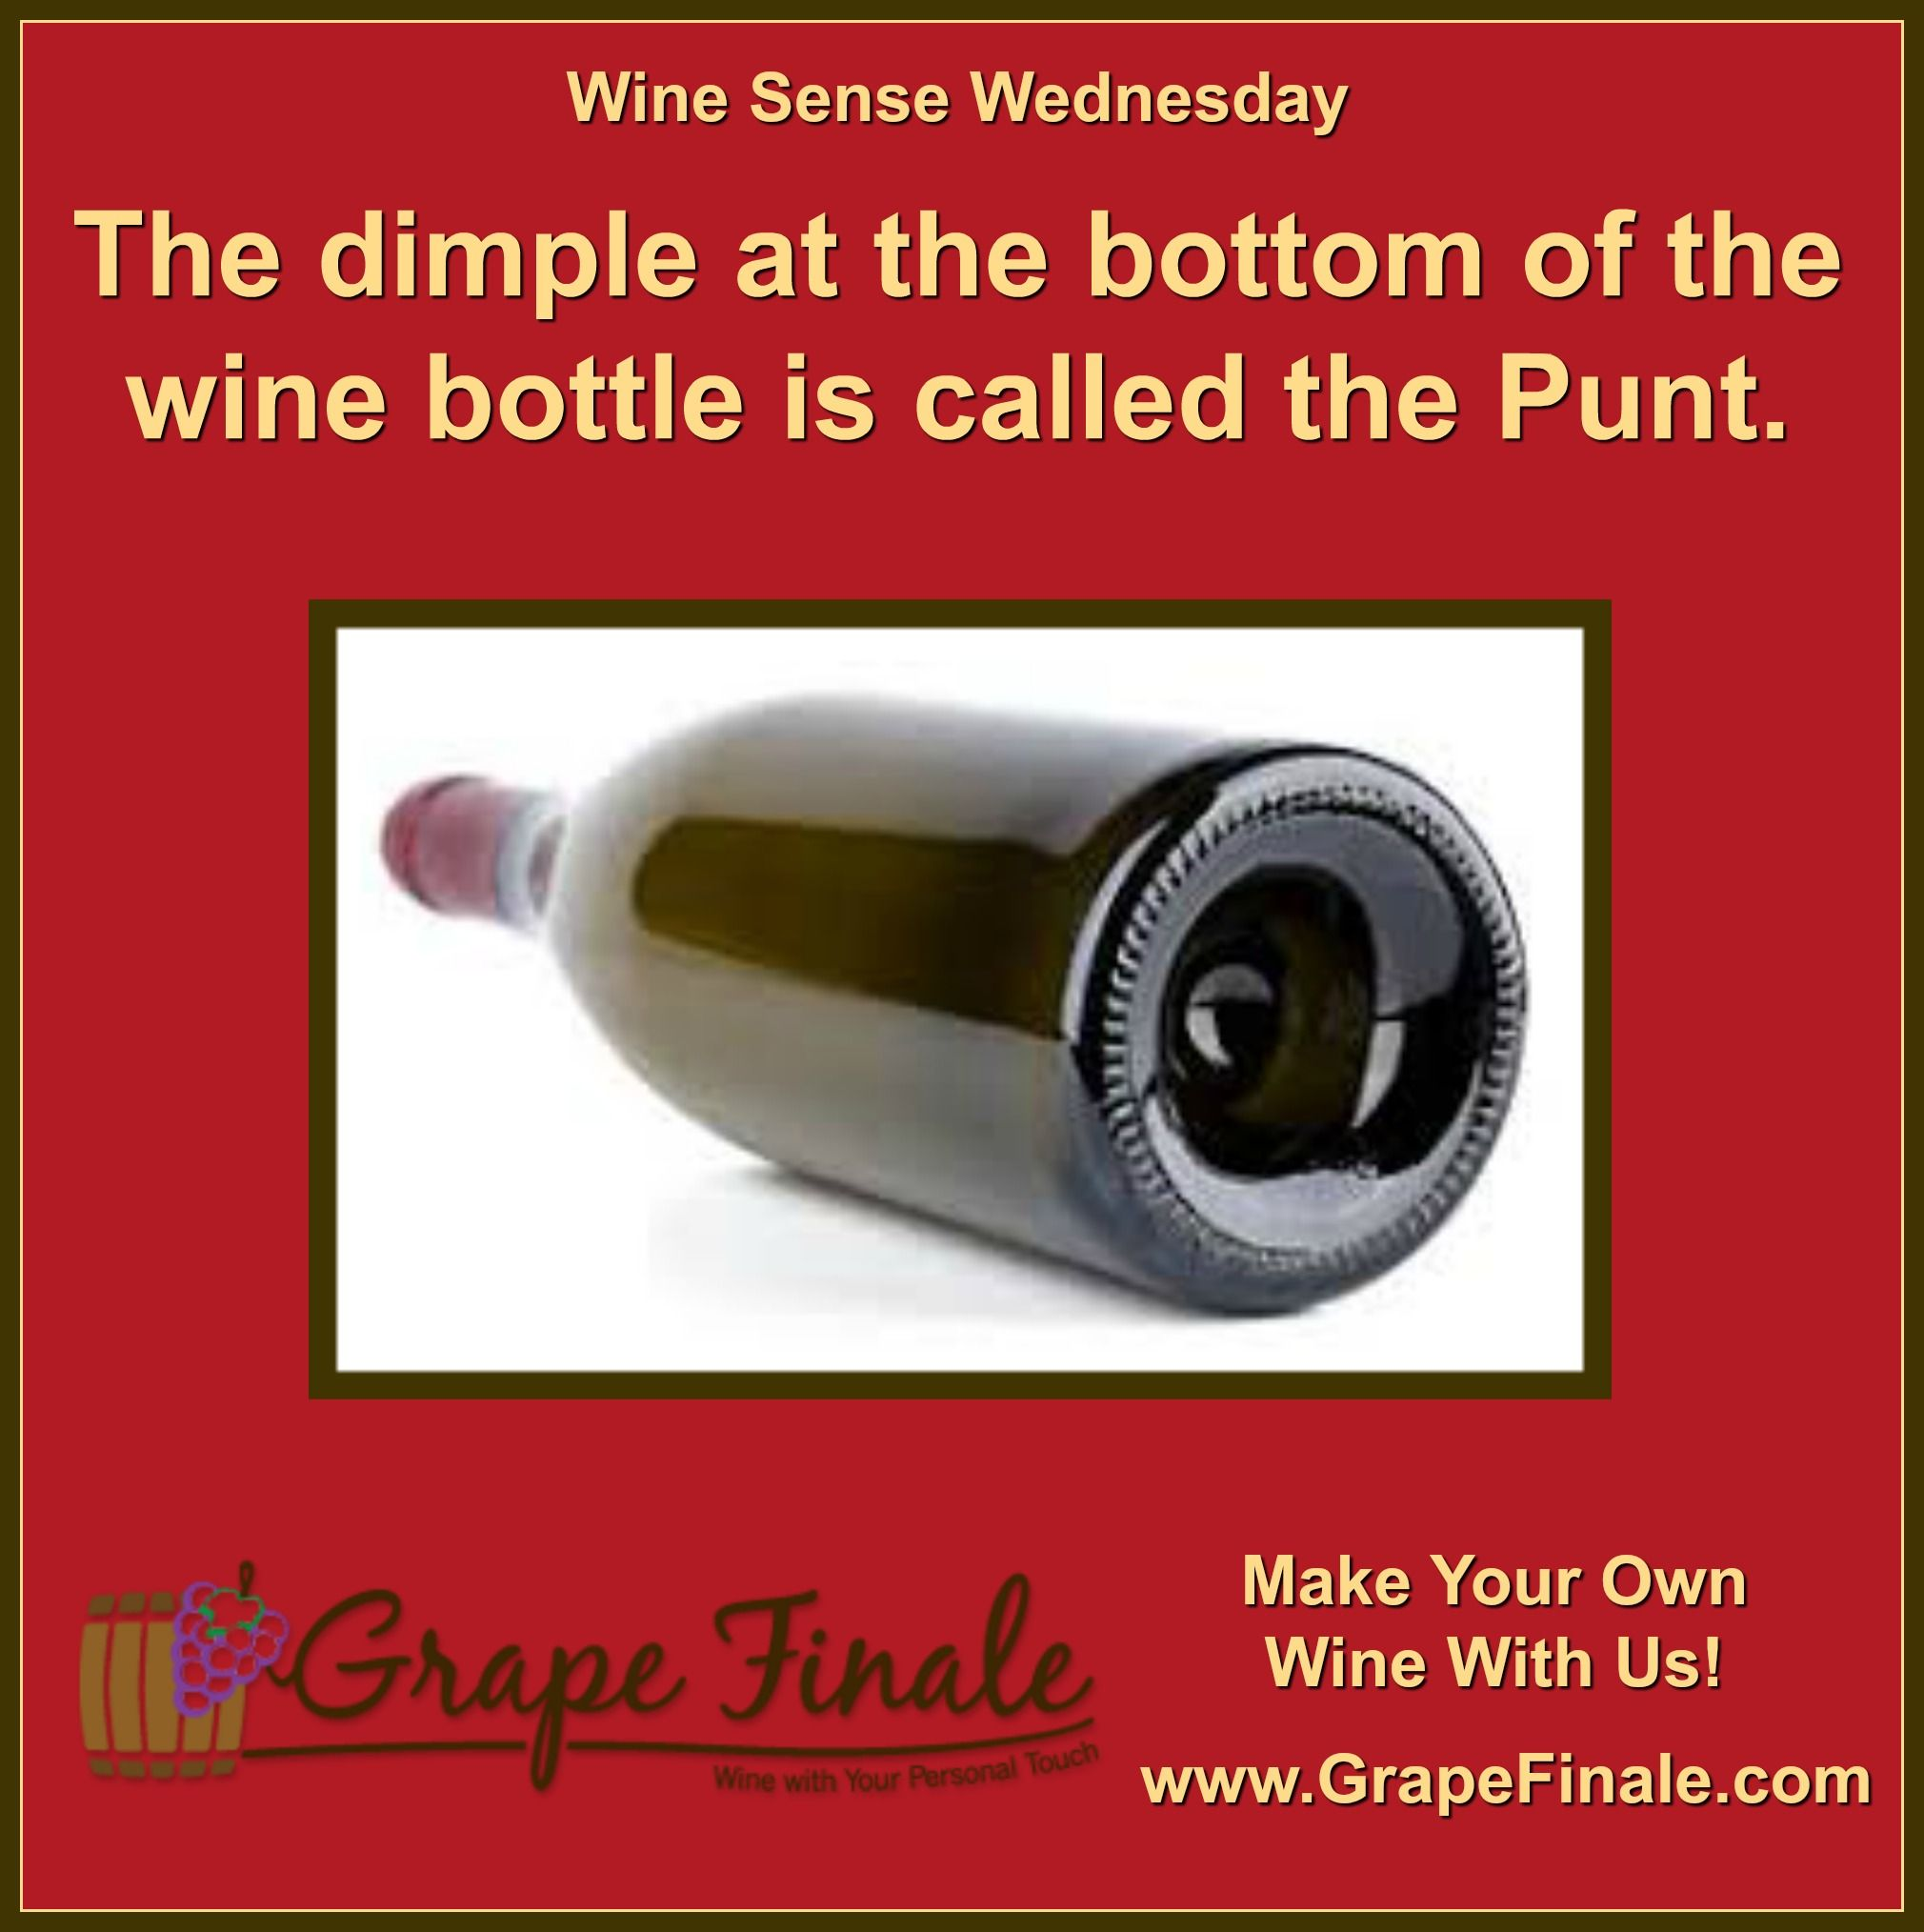 Historically Punts Were A Function Of Wine Bottles Being Made By Glassblowers The Seam Was Pushed Up To Make Sur In 2020 Wine Aging Wine Making Equipment Wine Bottle